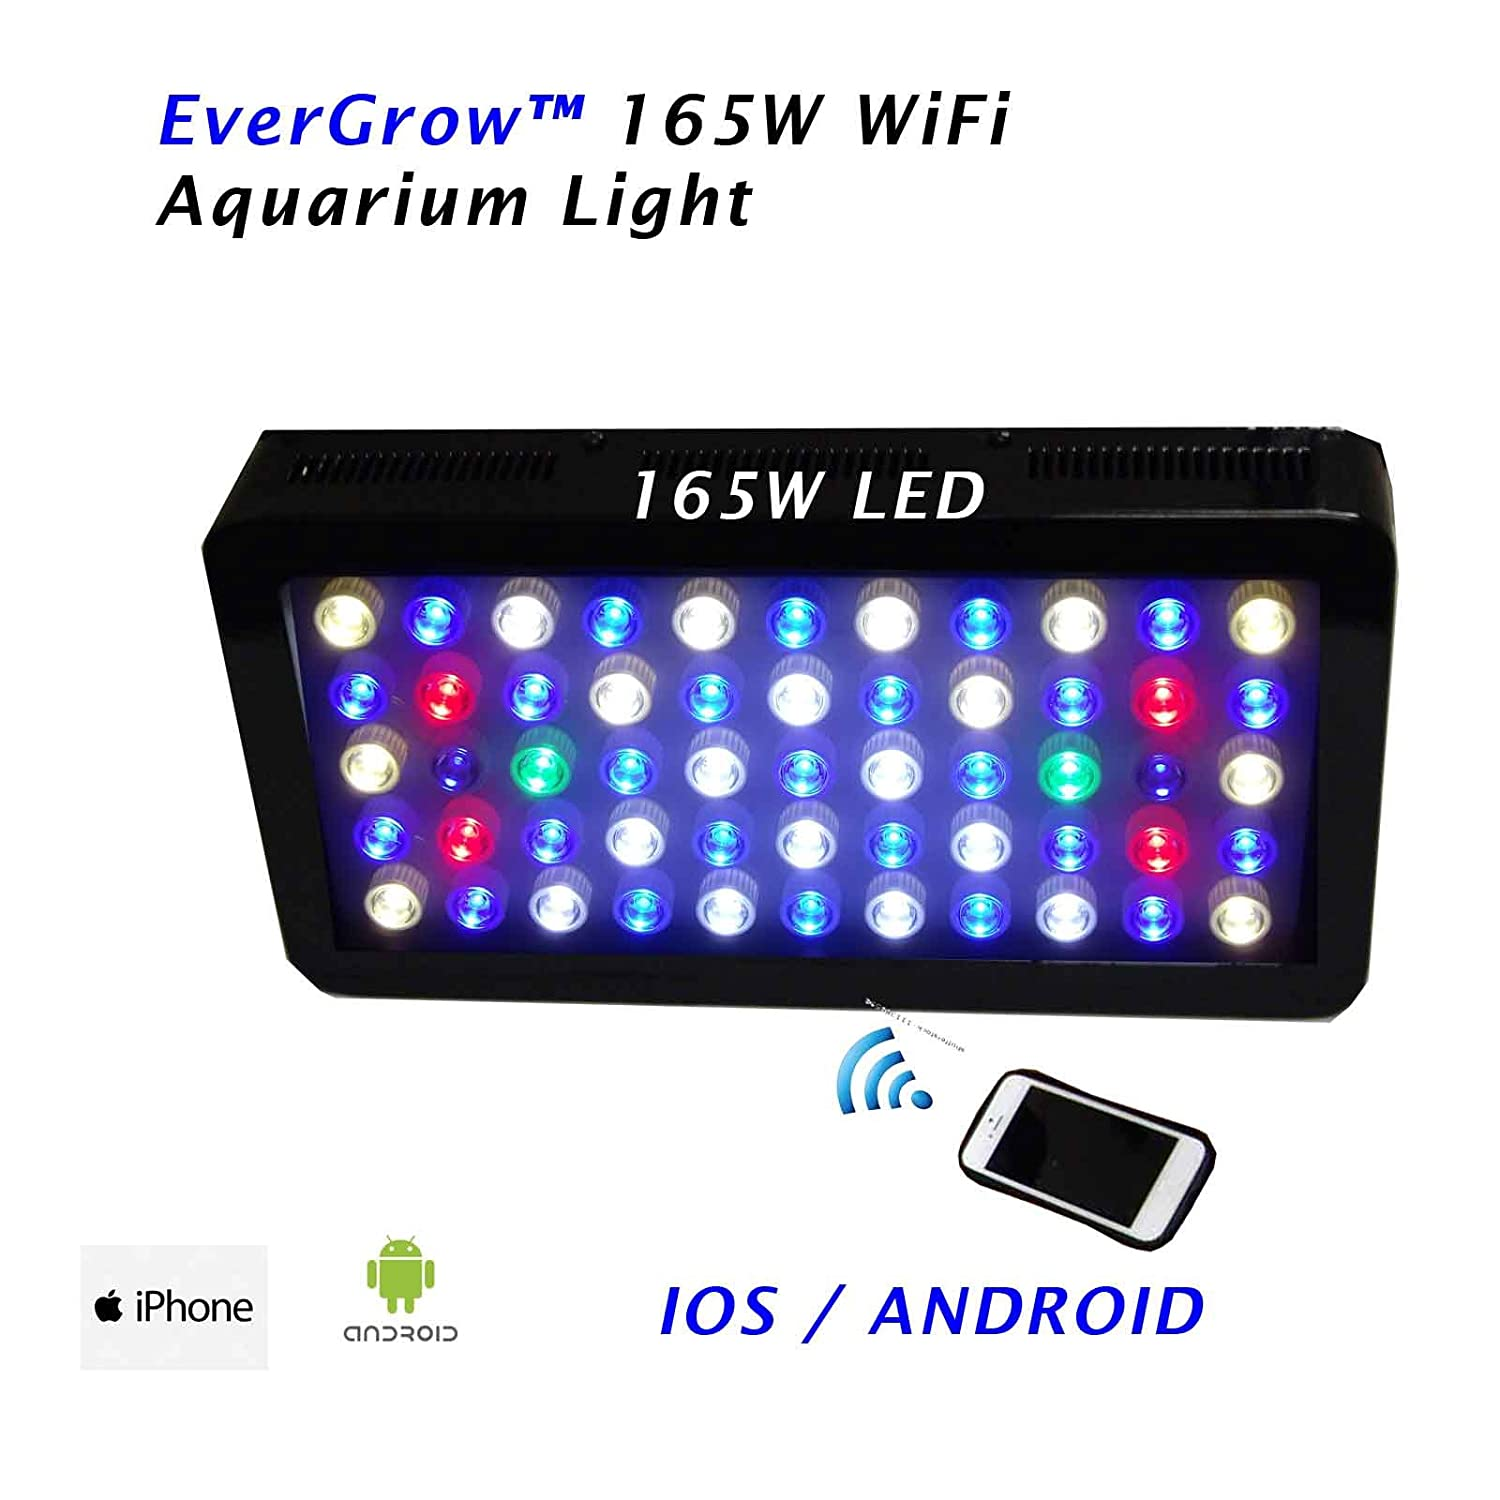 EVERGROW 100% programmable 165 Watt Aquarium Coral Reef LED Grow Light , 55x3 Watt Dimmable full spectrum with WIFI controller for iphone, android phone + FREE hanging kit - One Year Warranty